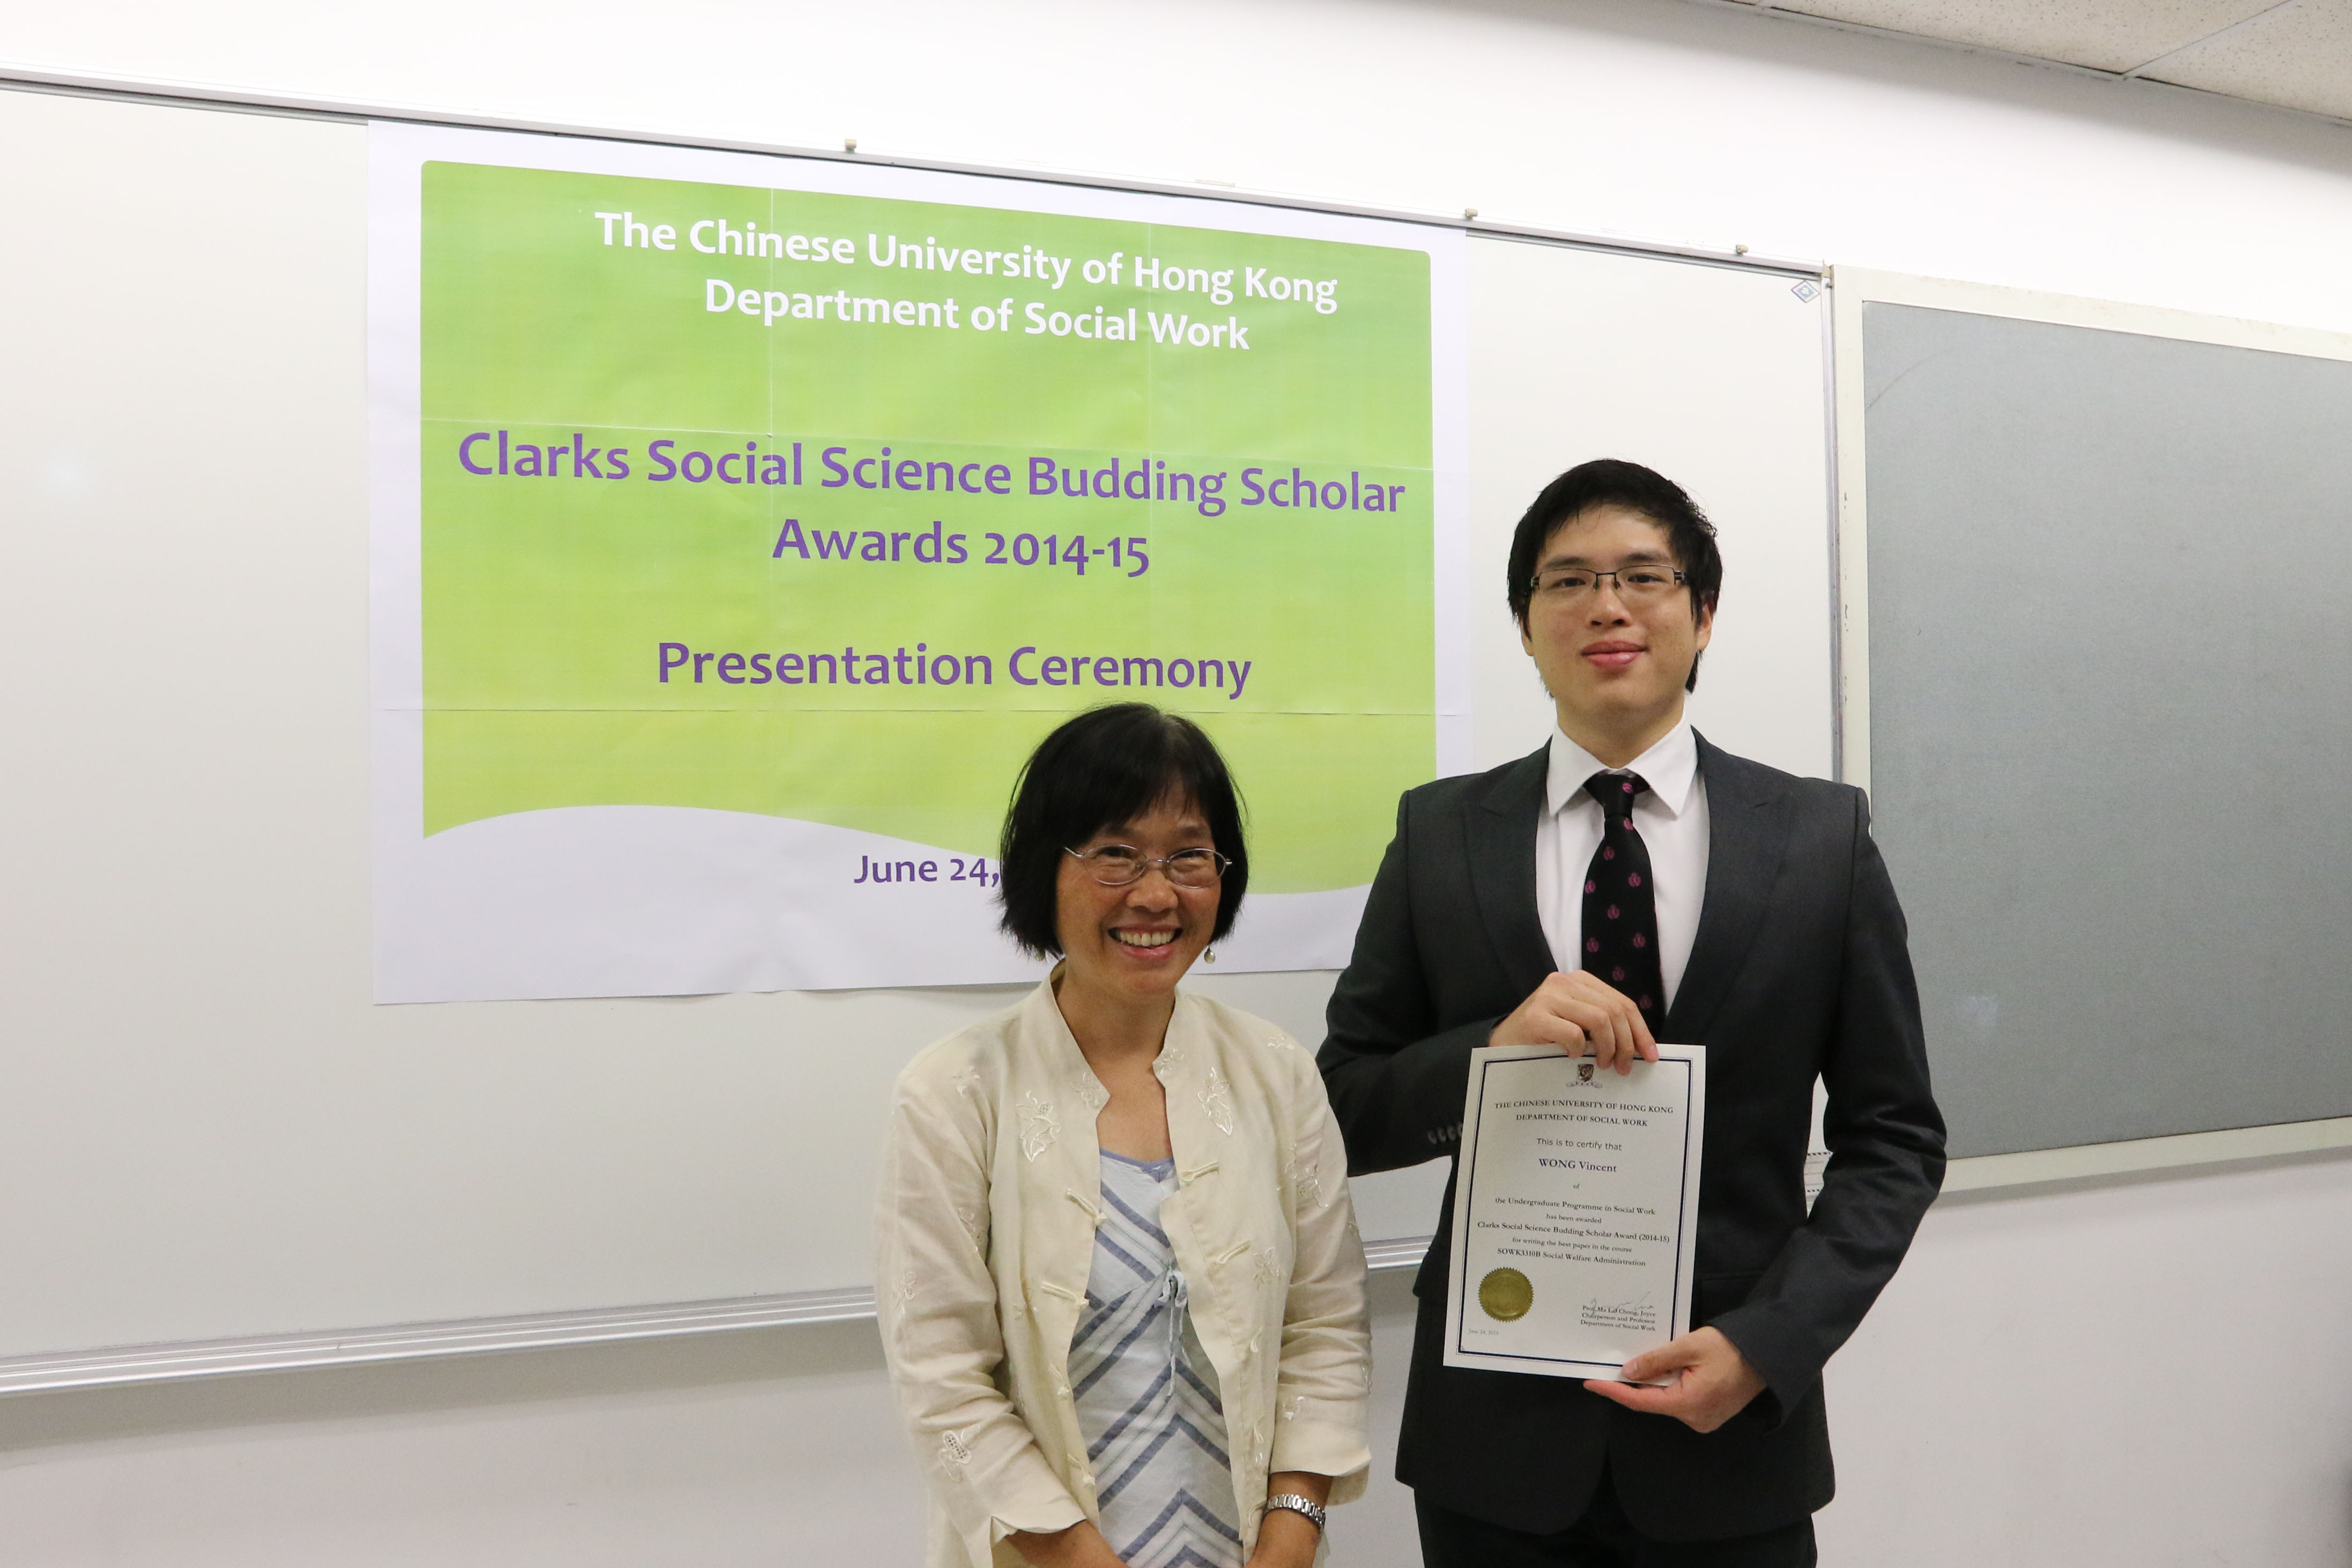 vincent wong (left) and mr. lawrence chiu (right).